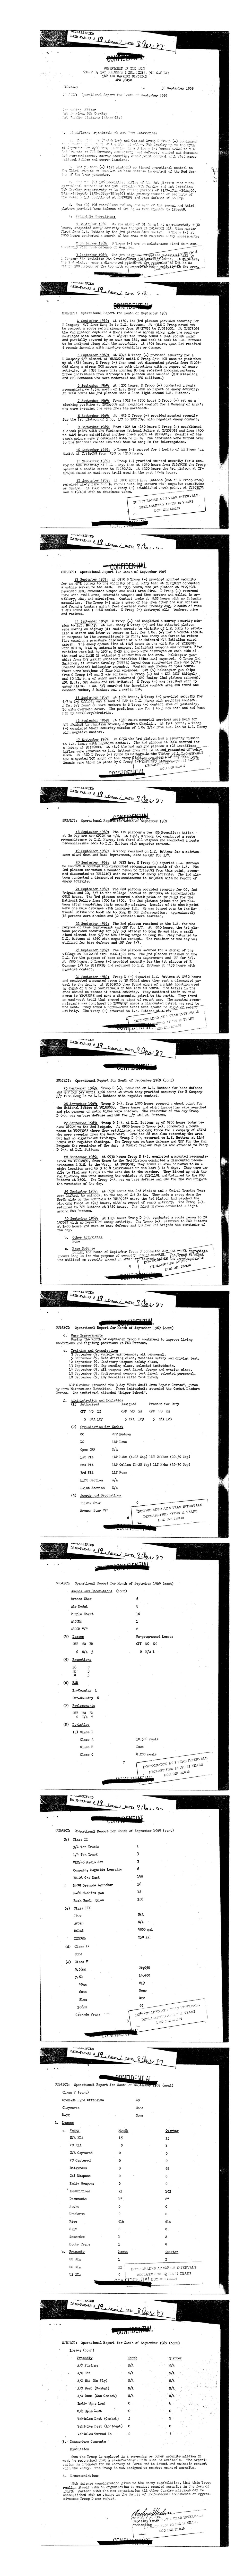 D Troop September 1969 report